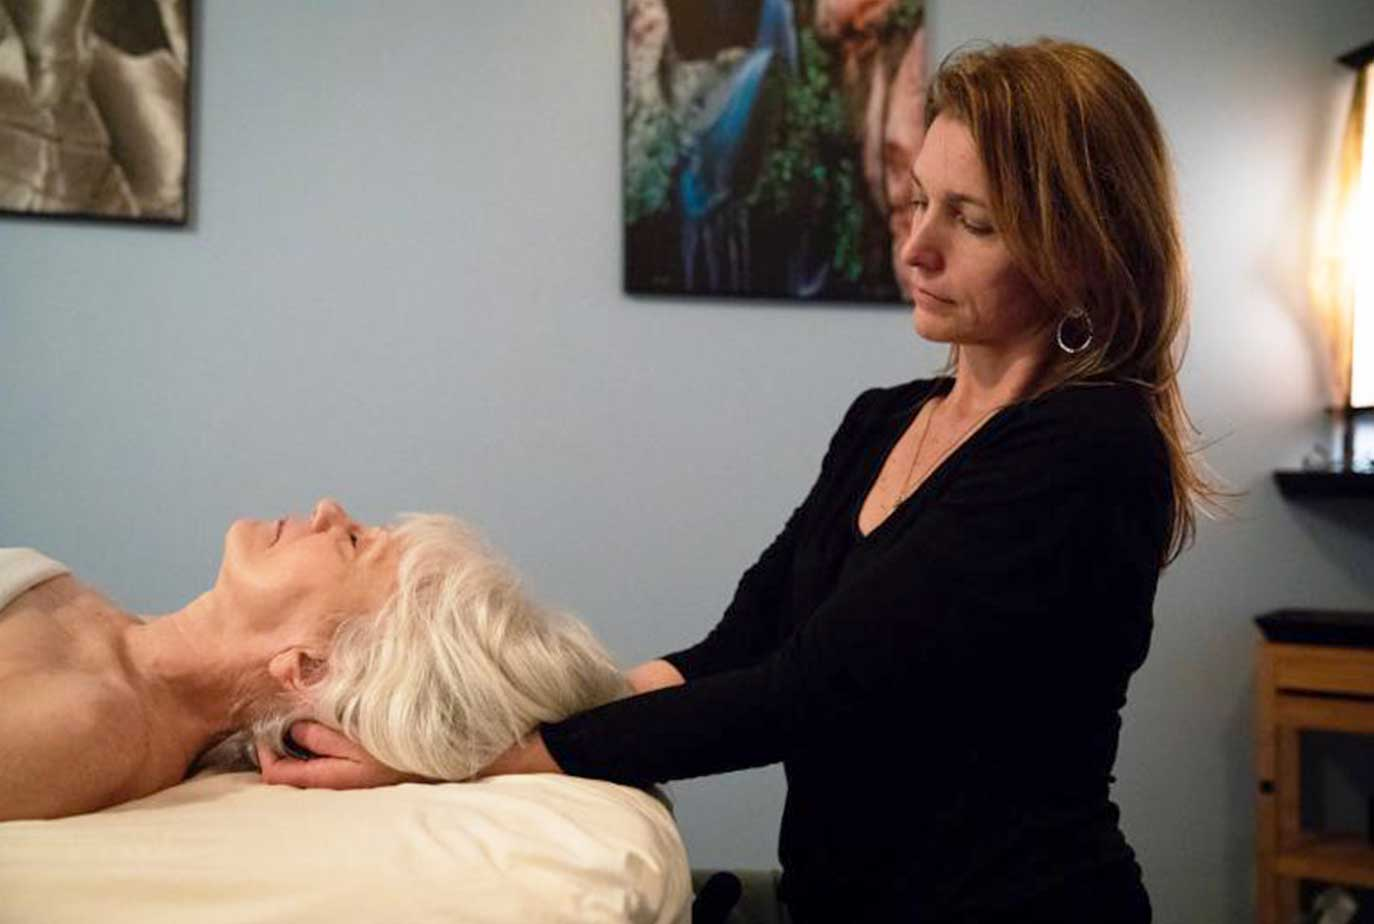 Neck Massage Massage Therapy Works Inc in Somerville, MA